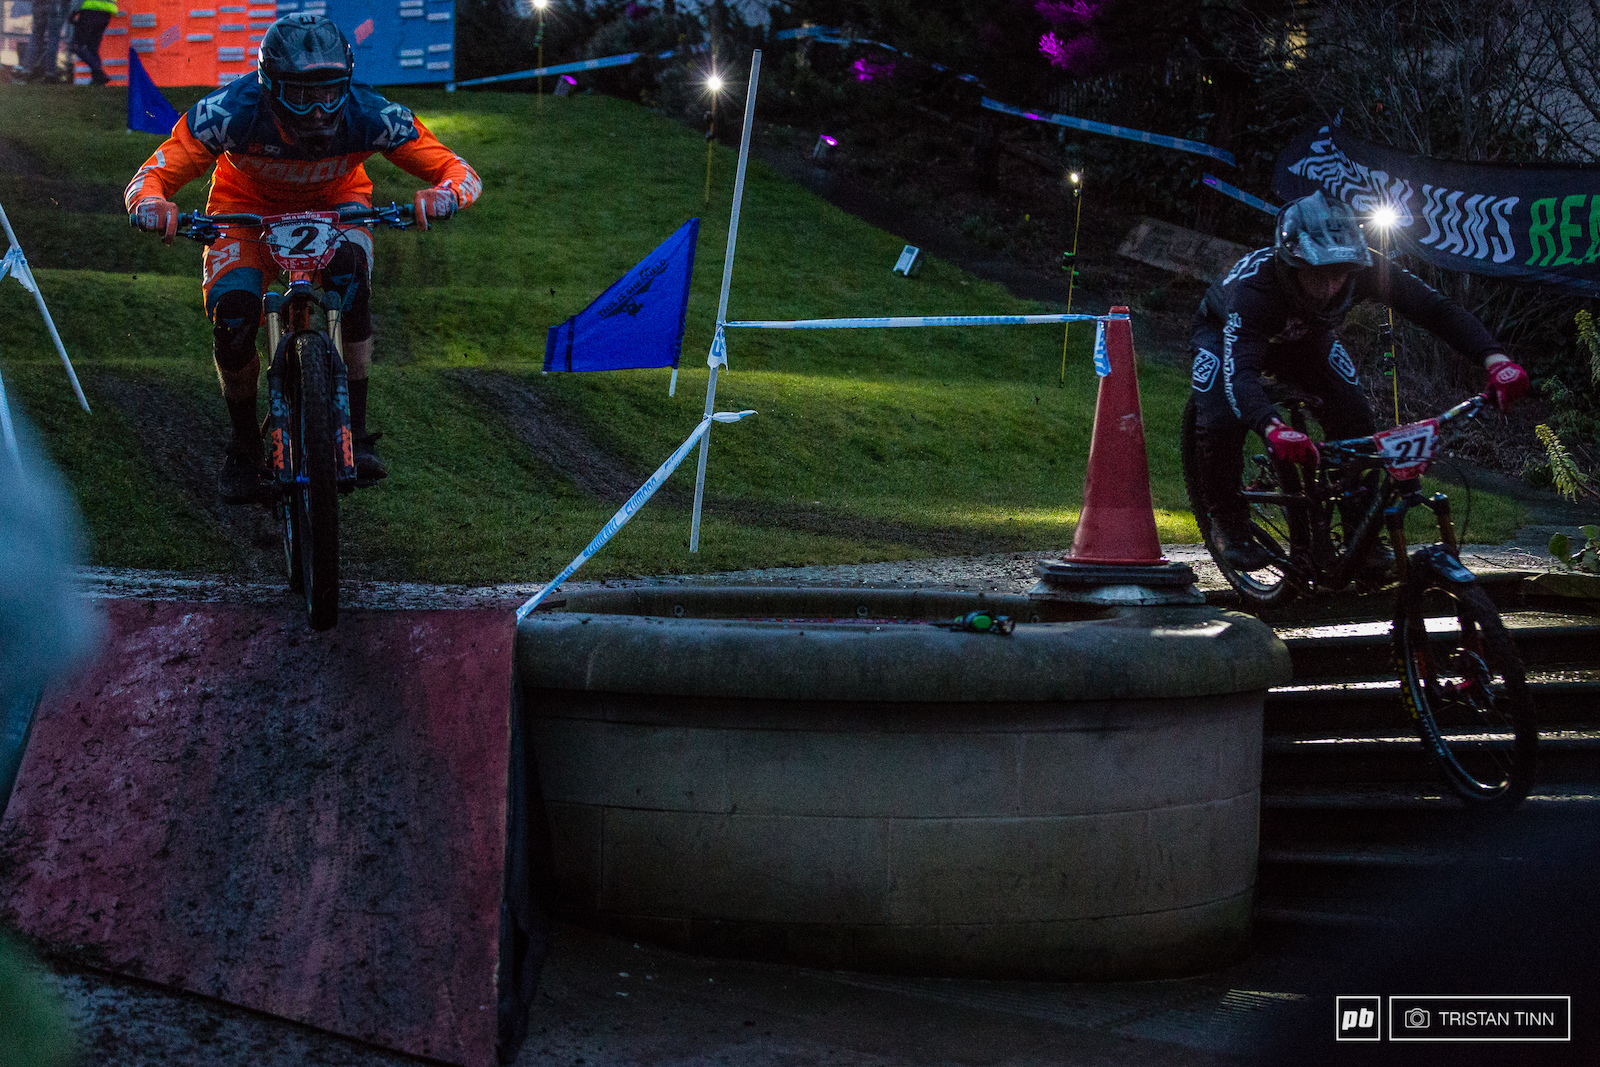 Ben Moore last years runner up battles it out of one of the few hardtails against Jordan Gould